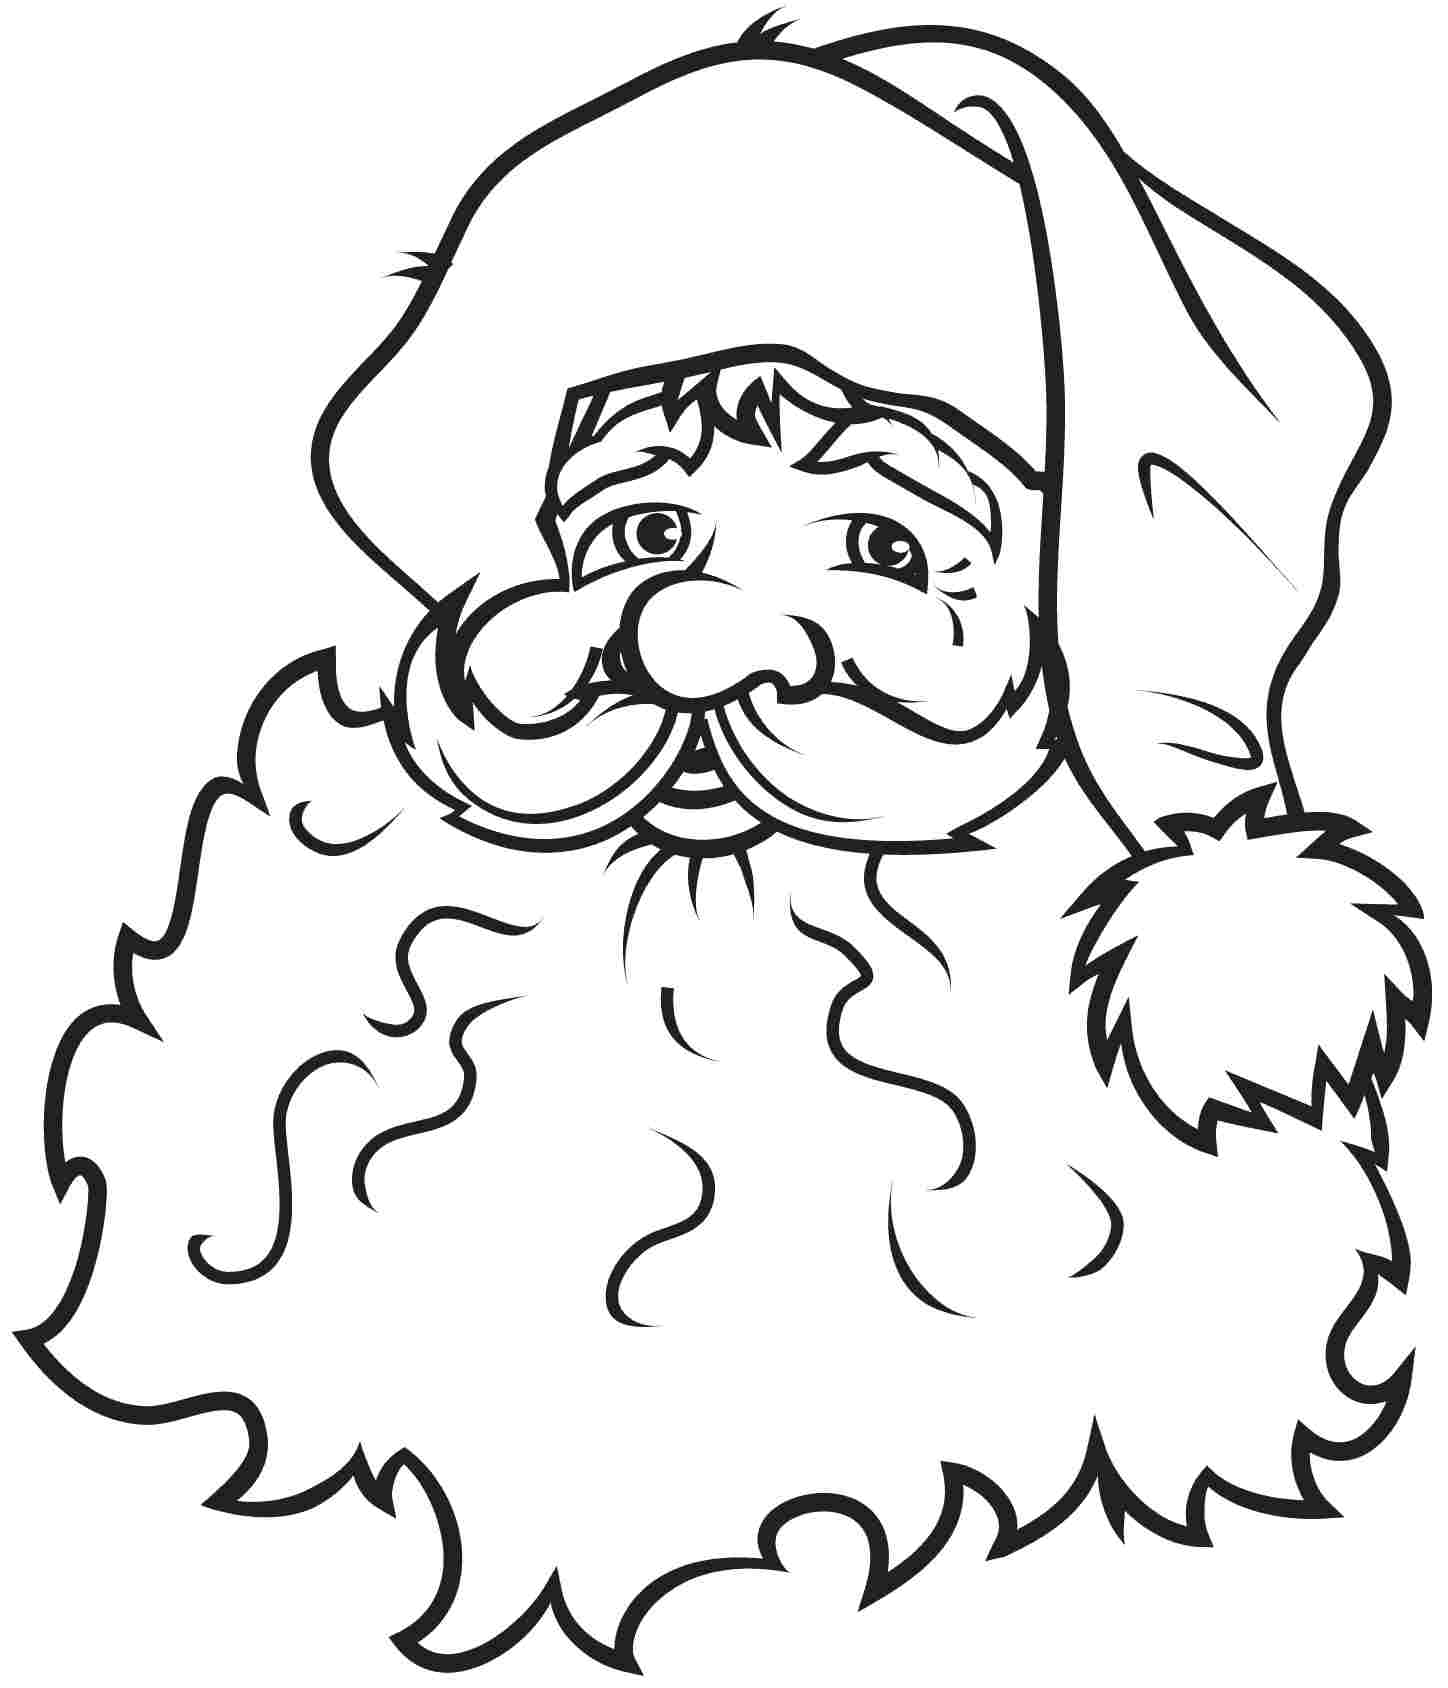 Free Santa Claus Outline Download Free Clip Art Free Clip Art On Clipart Library